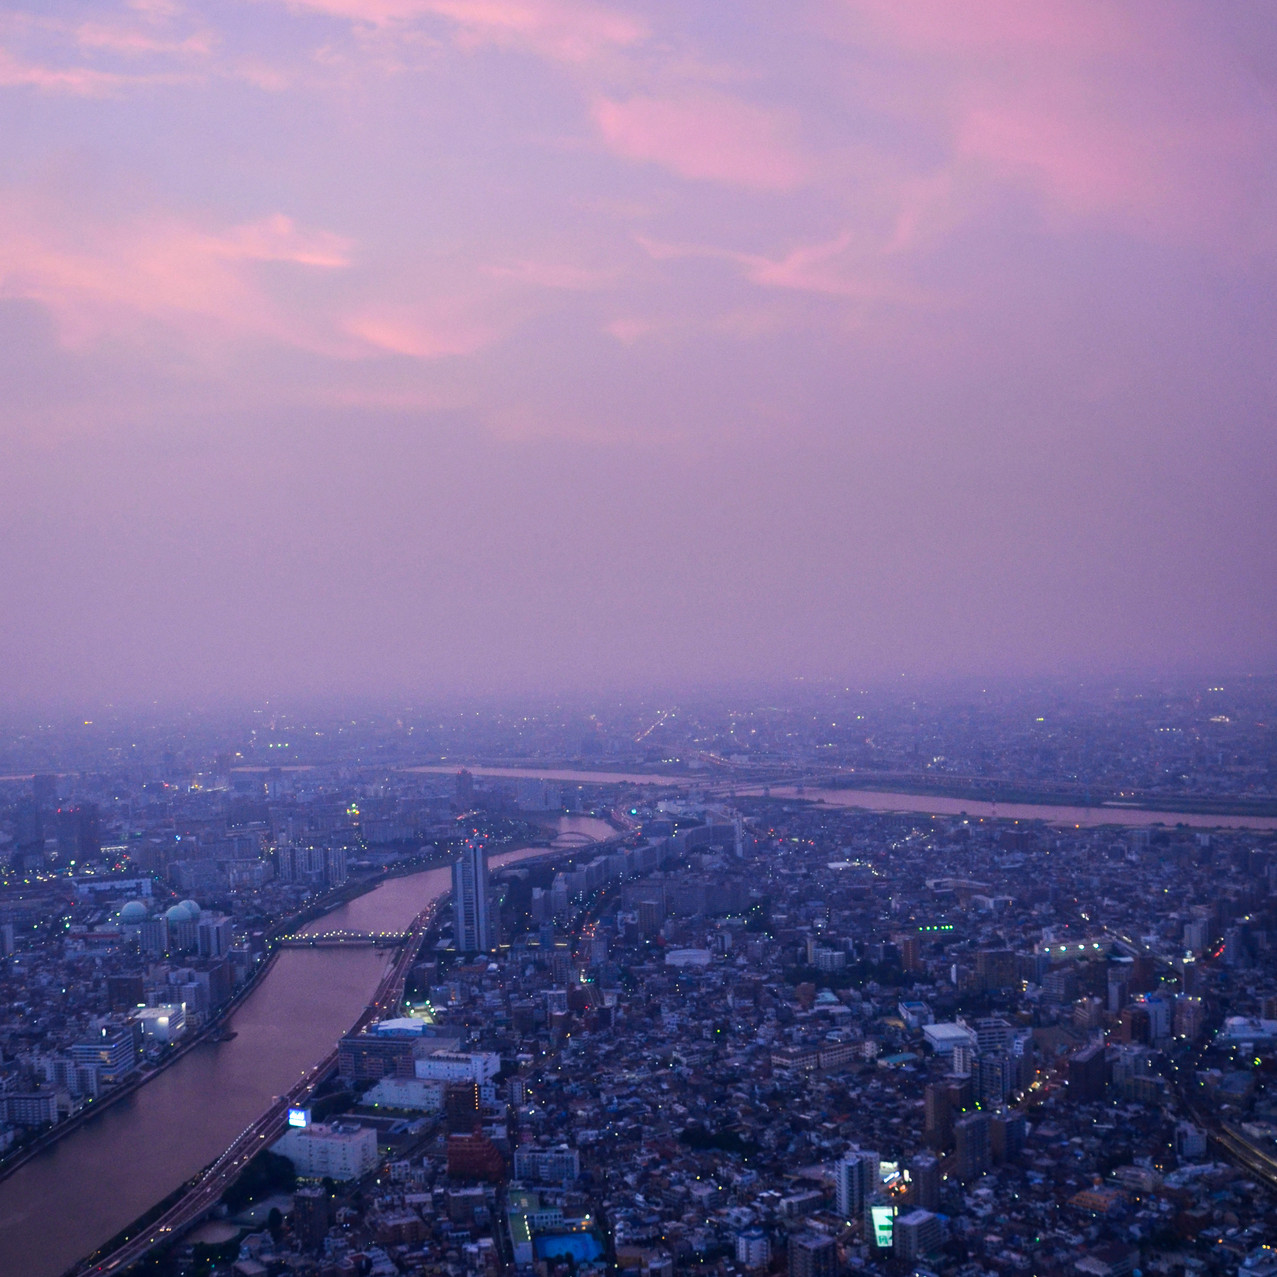 The view on the city during the sunset from the Tokyo Skytree Observation Deck.